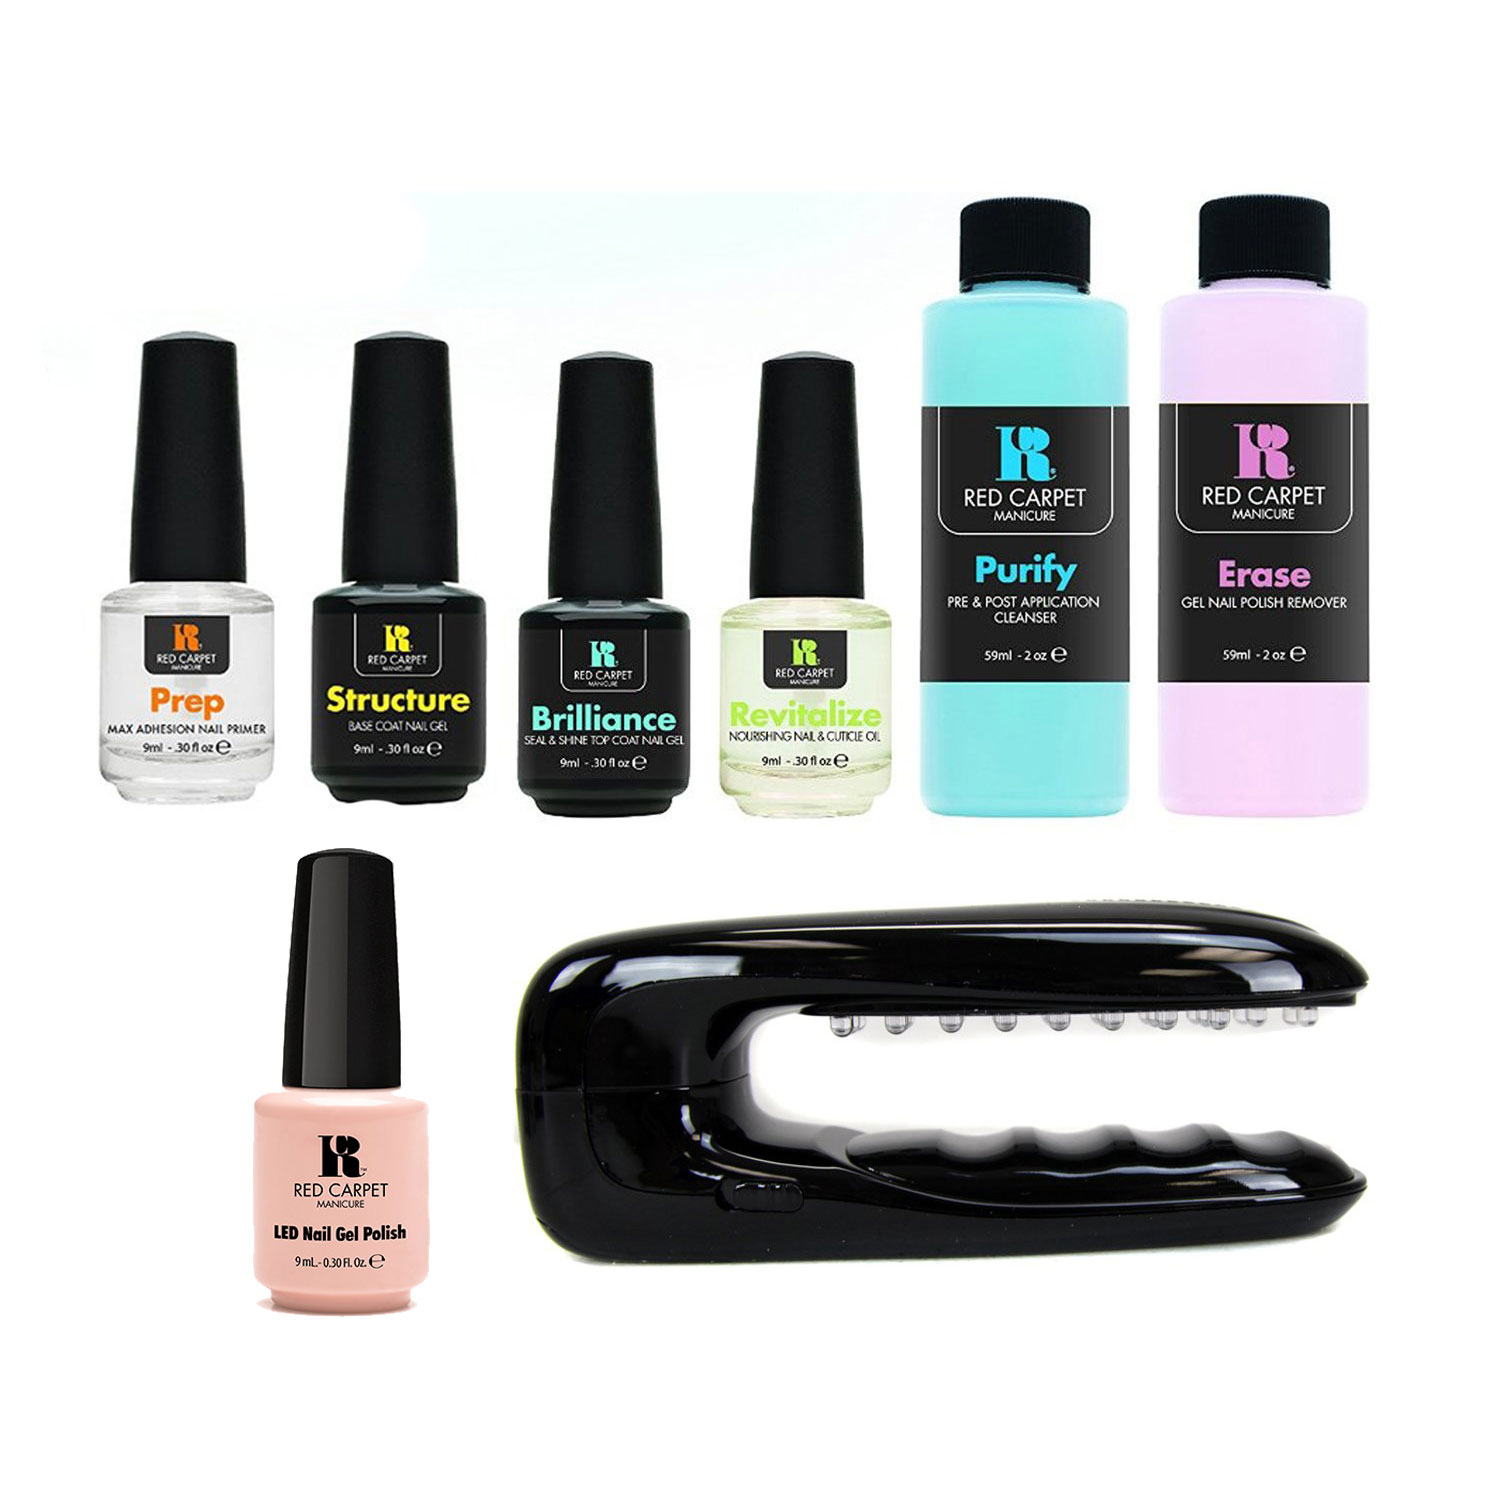 Nail Polish Package: Red Carpet Manicure Portable LED Package Soak Off Gel Nail